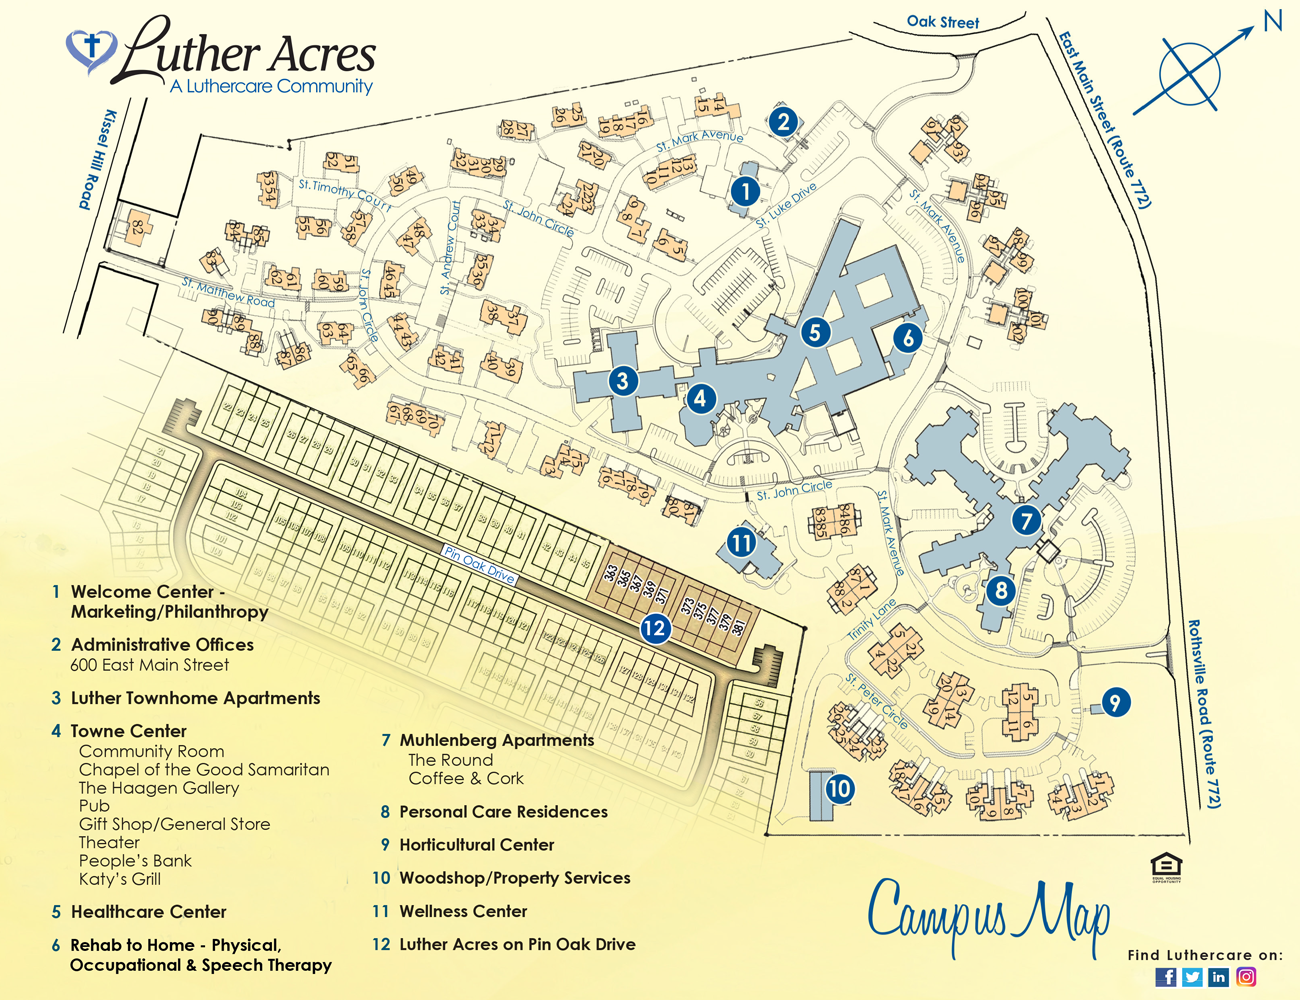 luther acres campus map